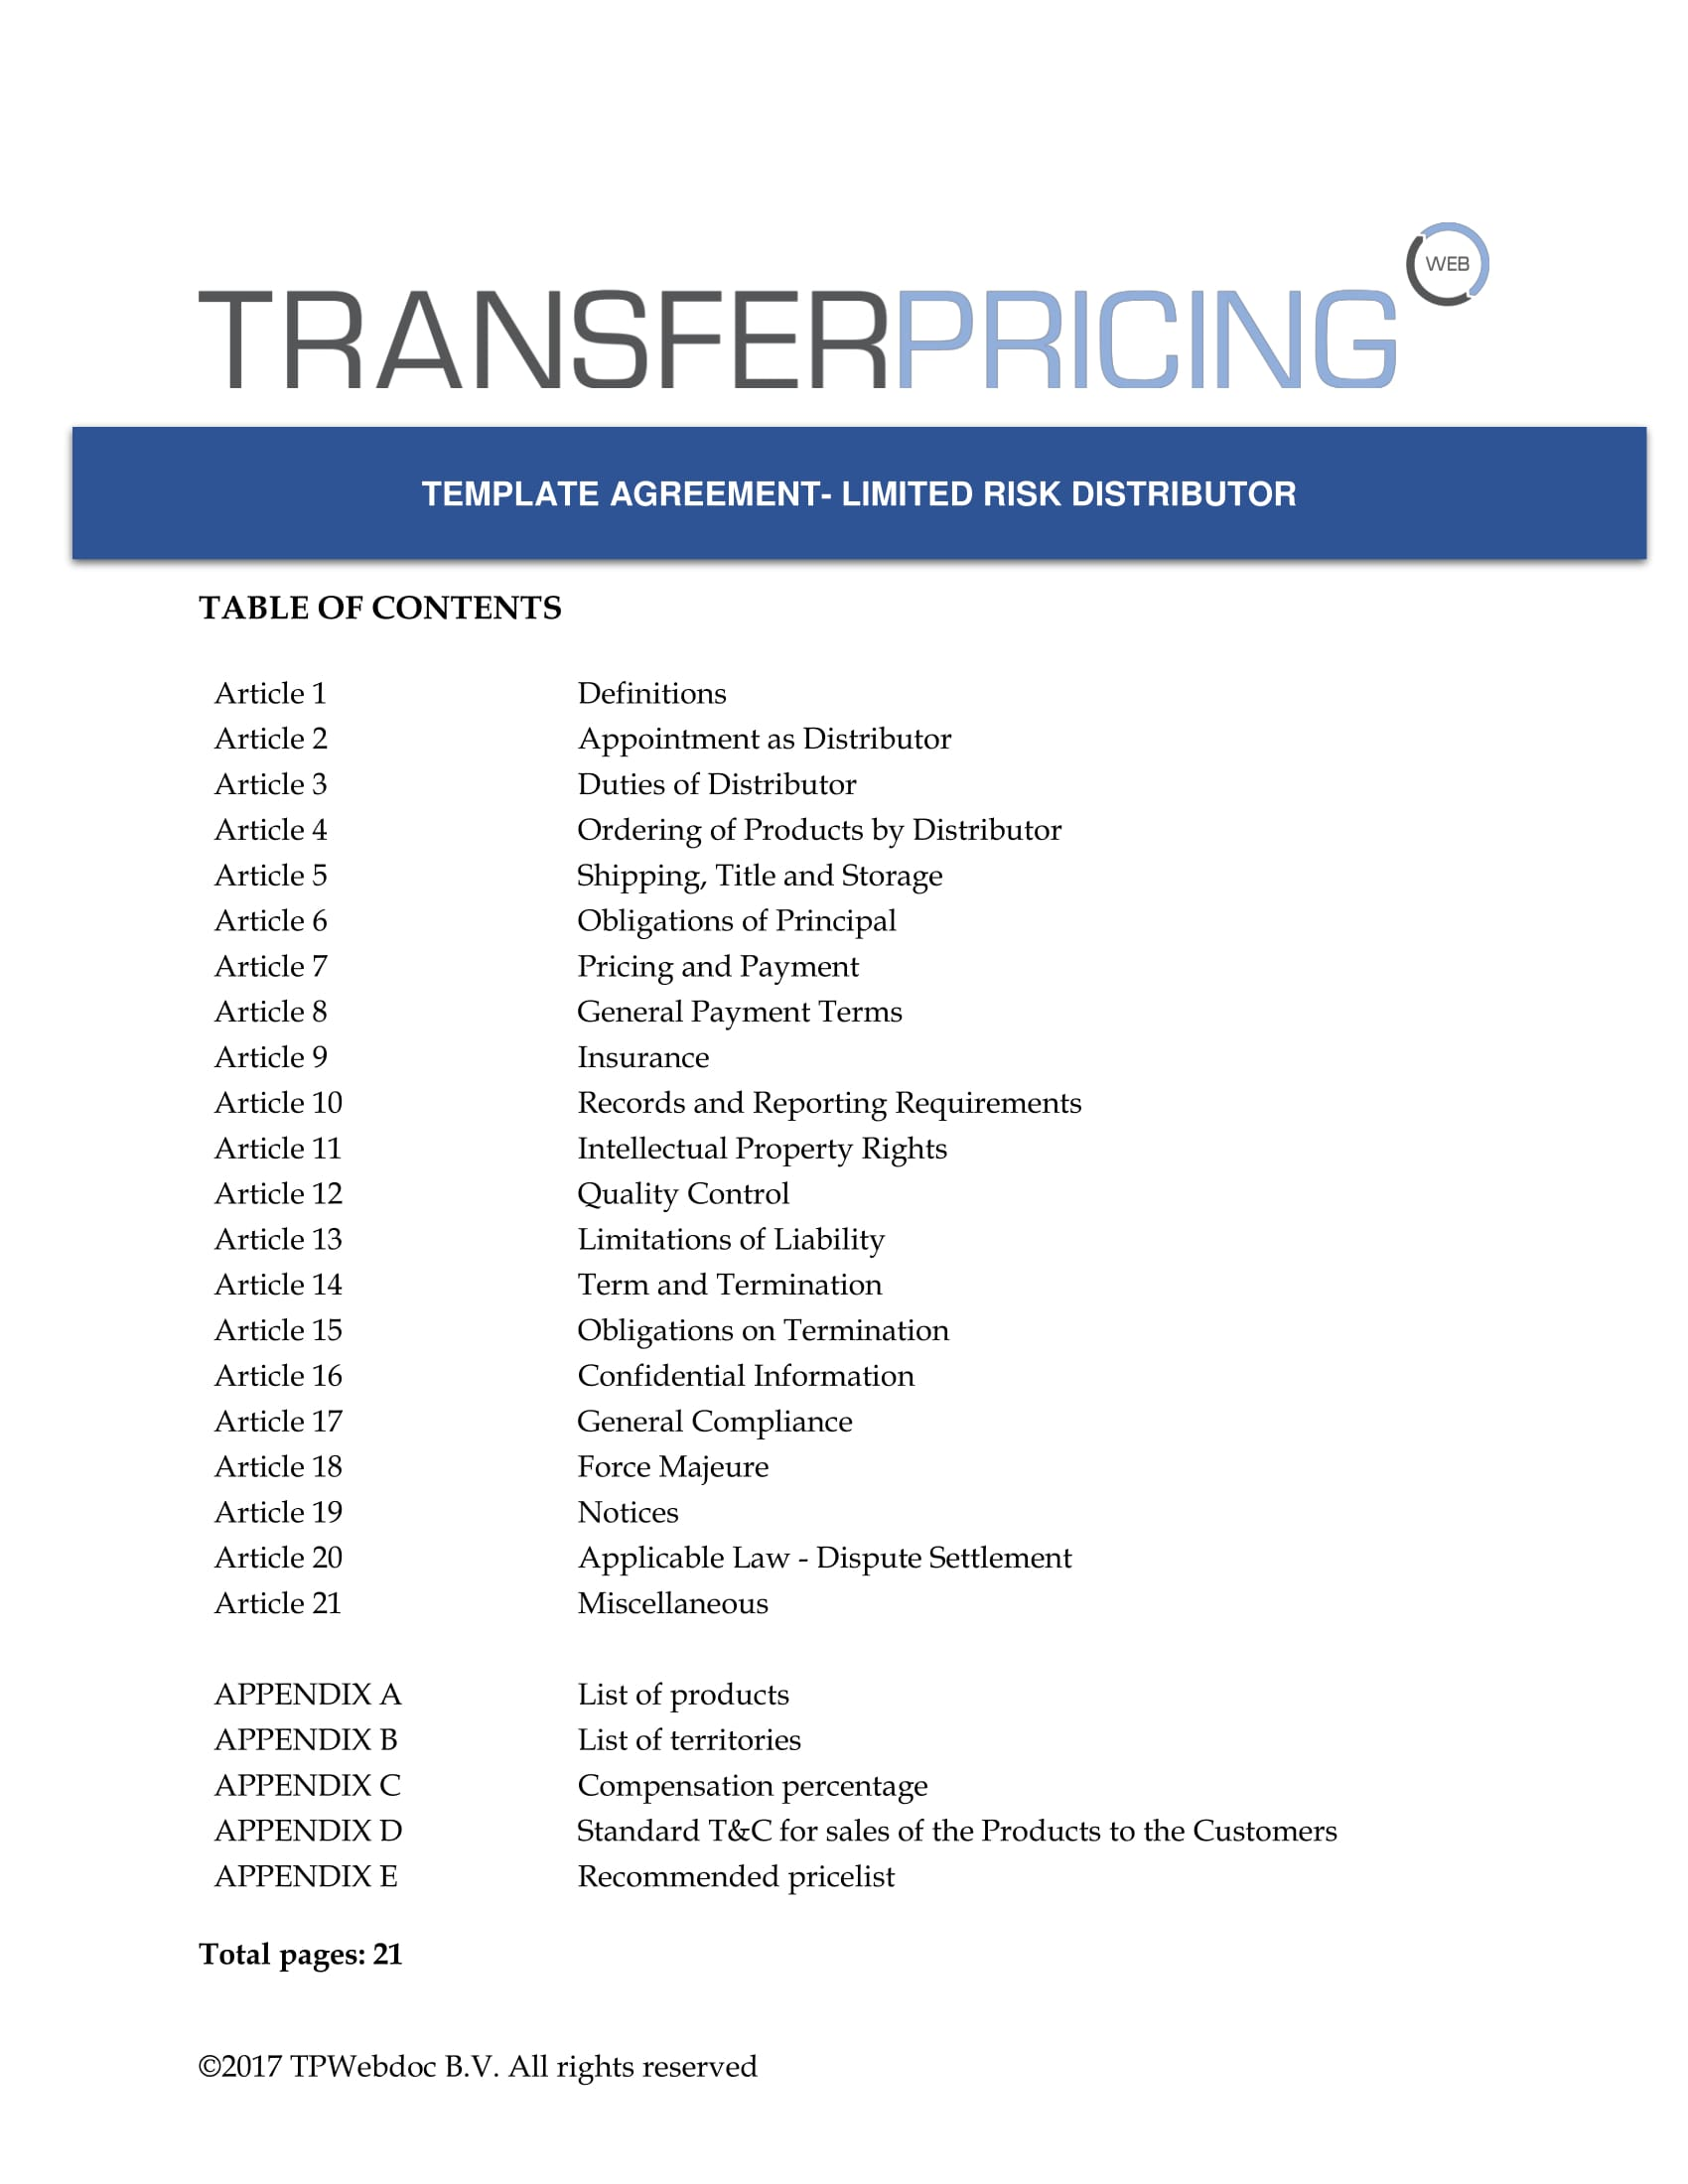 Limited Risk Distributor Agreement Transfer Pricing Web